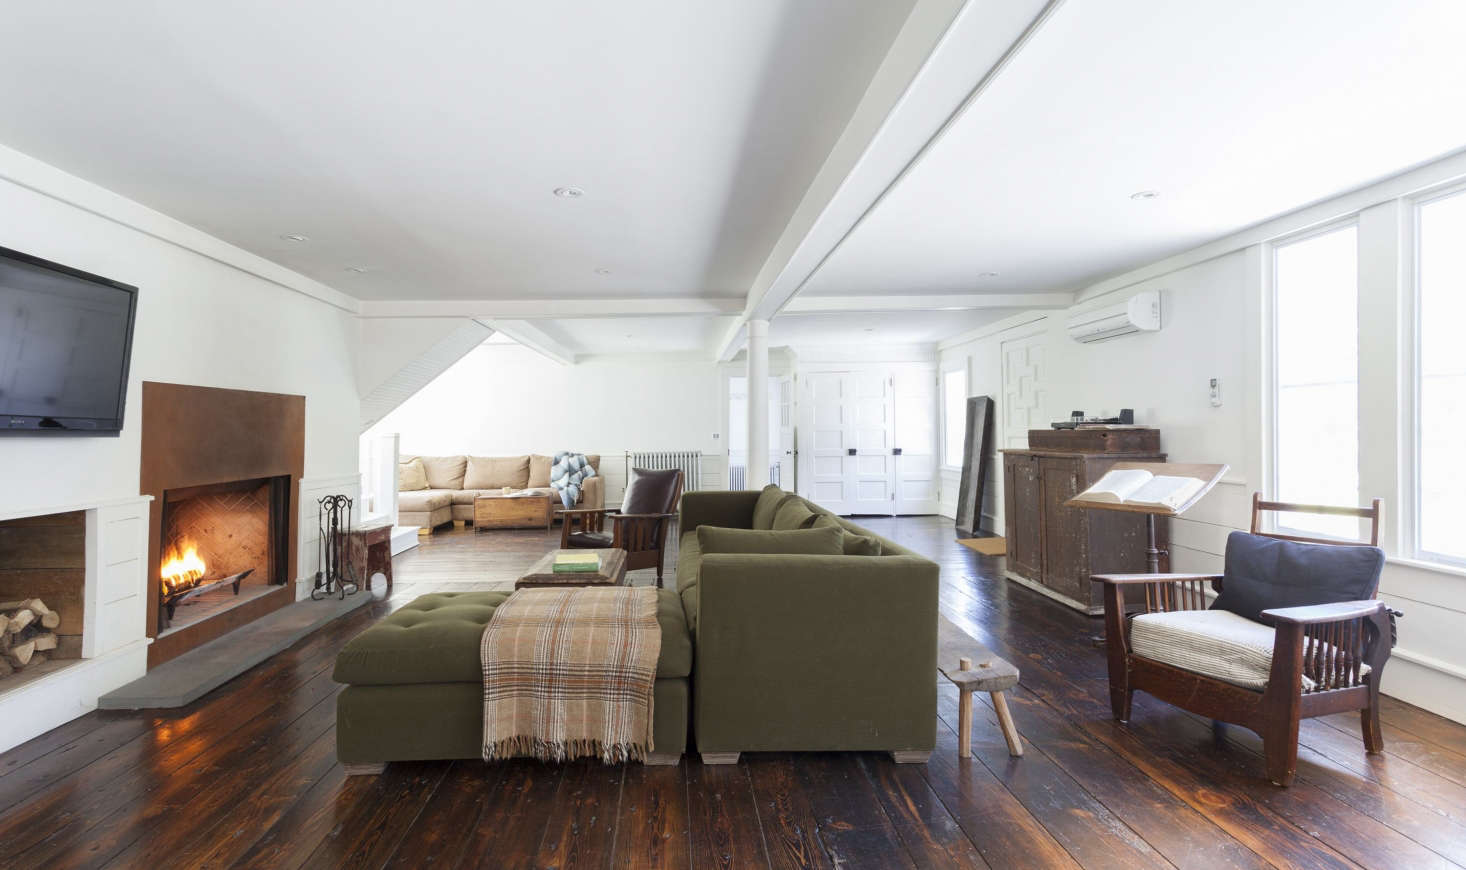 The open-plan living room/family room/dining room has its own steel-front fireplace and original wide-plank floors. The wainscoting and ceiling coffers were built from pine trees felled and milled on the property. The living room is painted in Benjamin Moore&#8